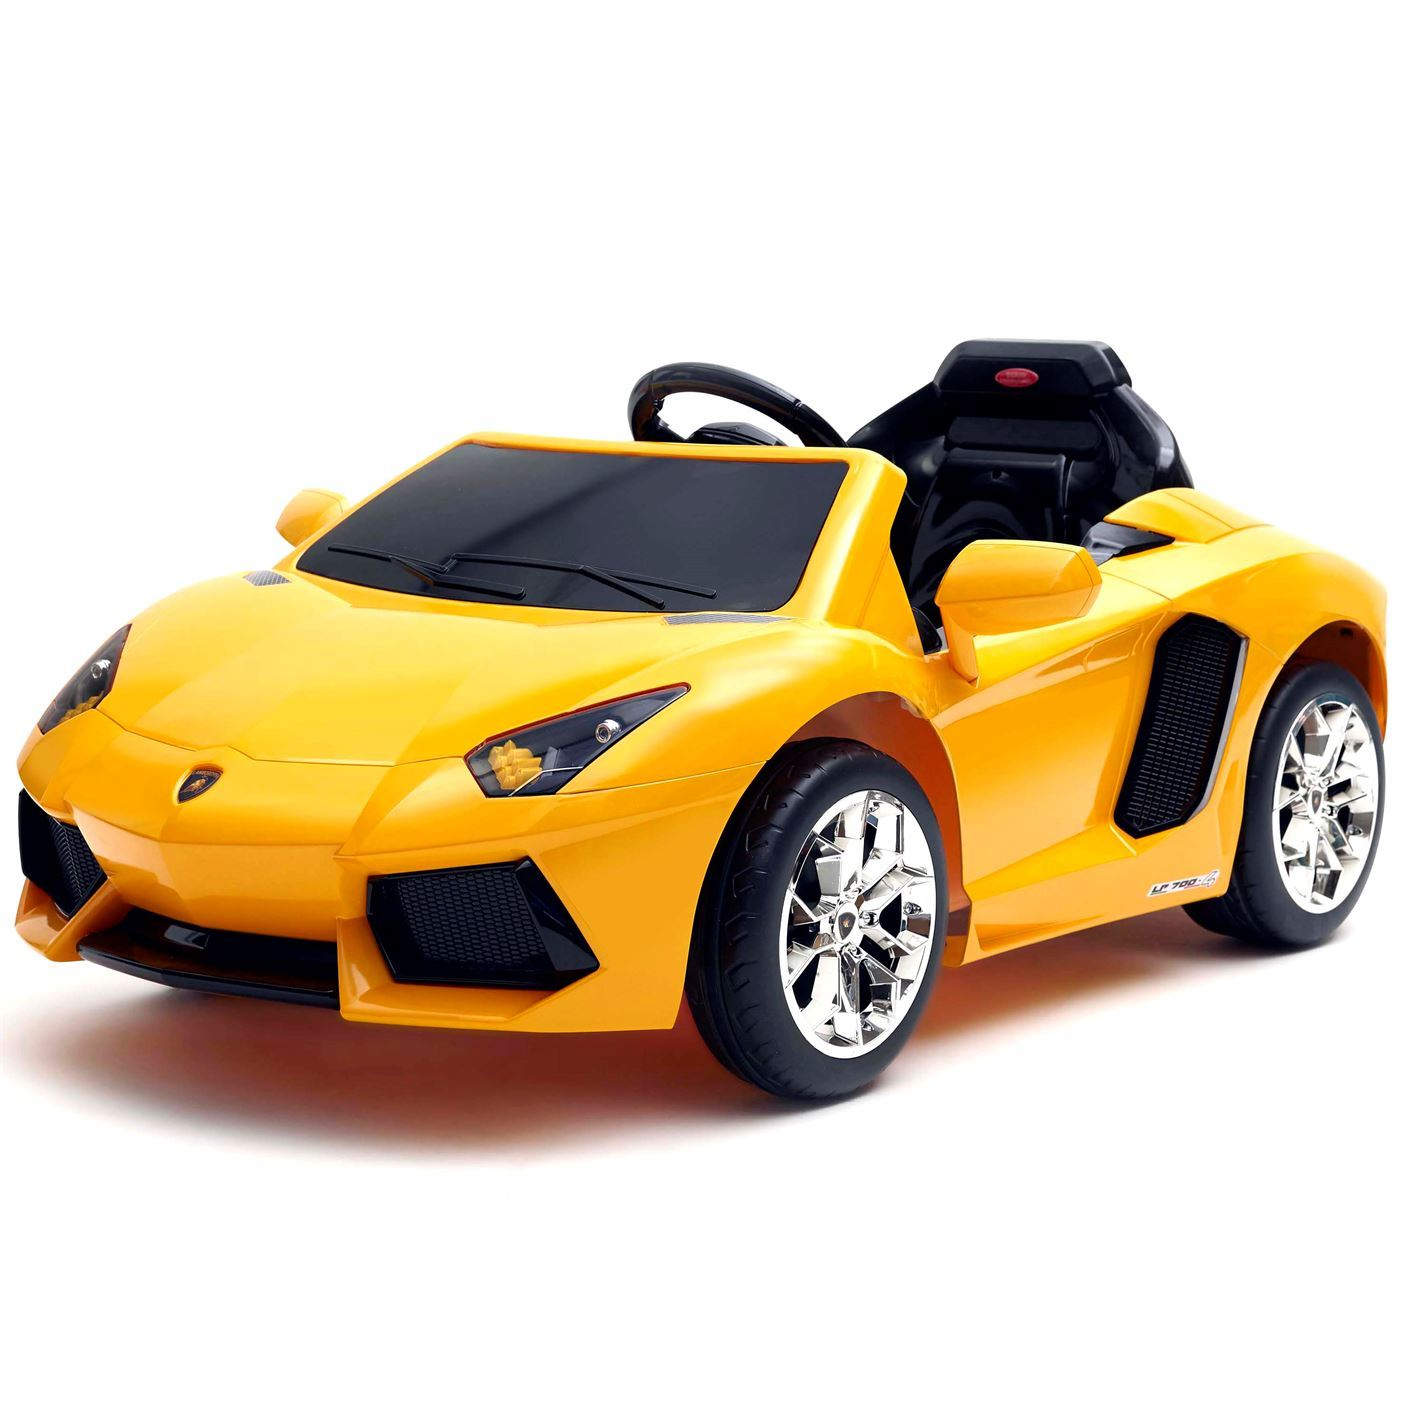 Lamborghini Electric Car For Kids >> Licensed 12v Feber Ferrari Ride-on Electric Car - £299.99 : Kids Electric Cars